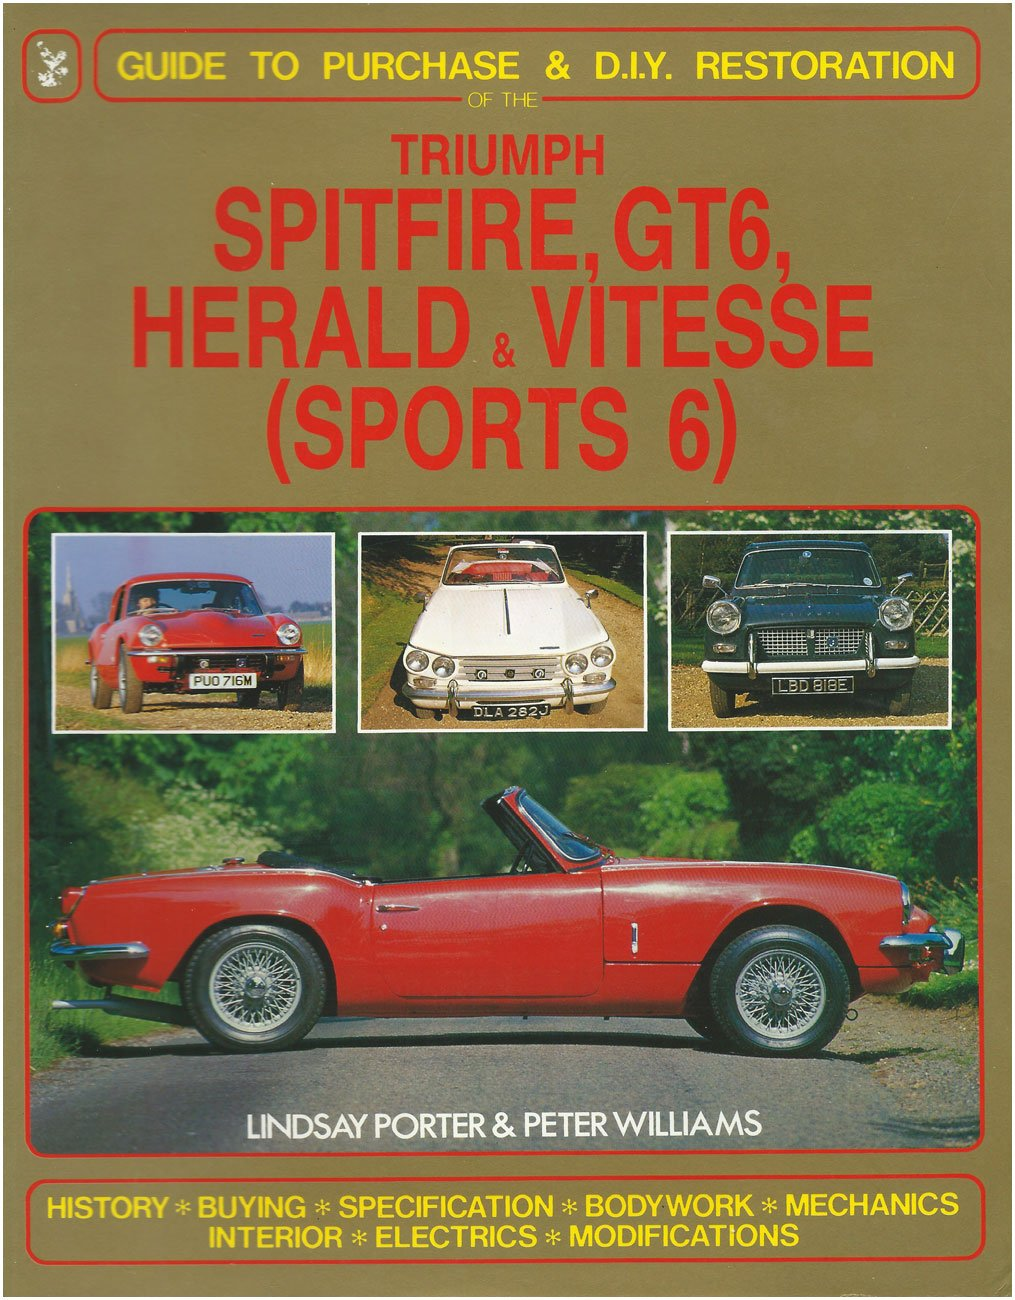 Triumph Spitfire, Gt6 Vitesse & Herald: Guide to Purchase & D.I.Y.  Restoration (Foulis Motoring Book): Amazon.co.uk: Lindsay Porter, Peter  Williams: ...